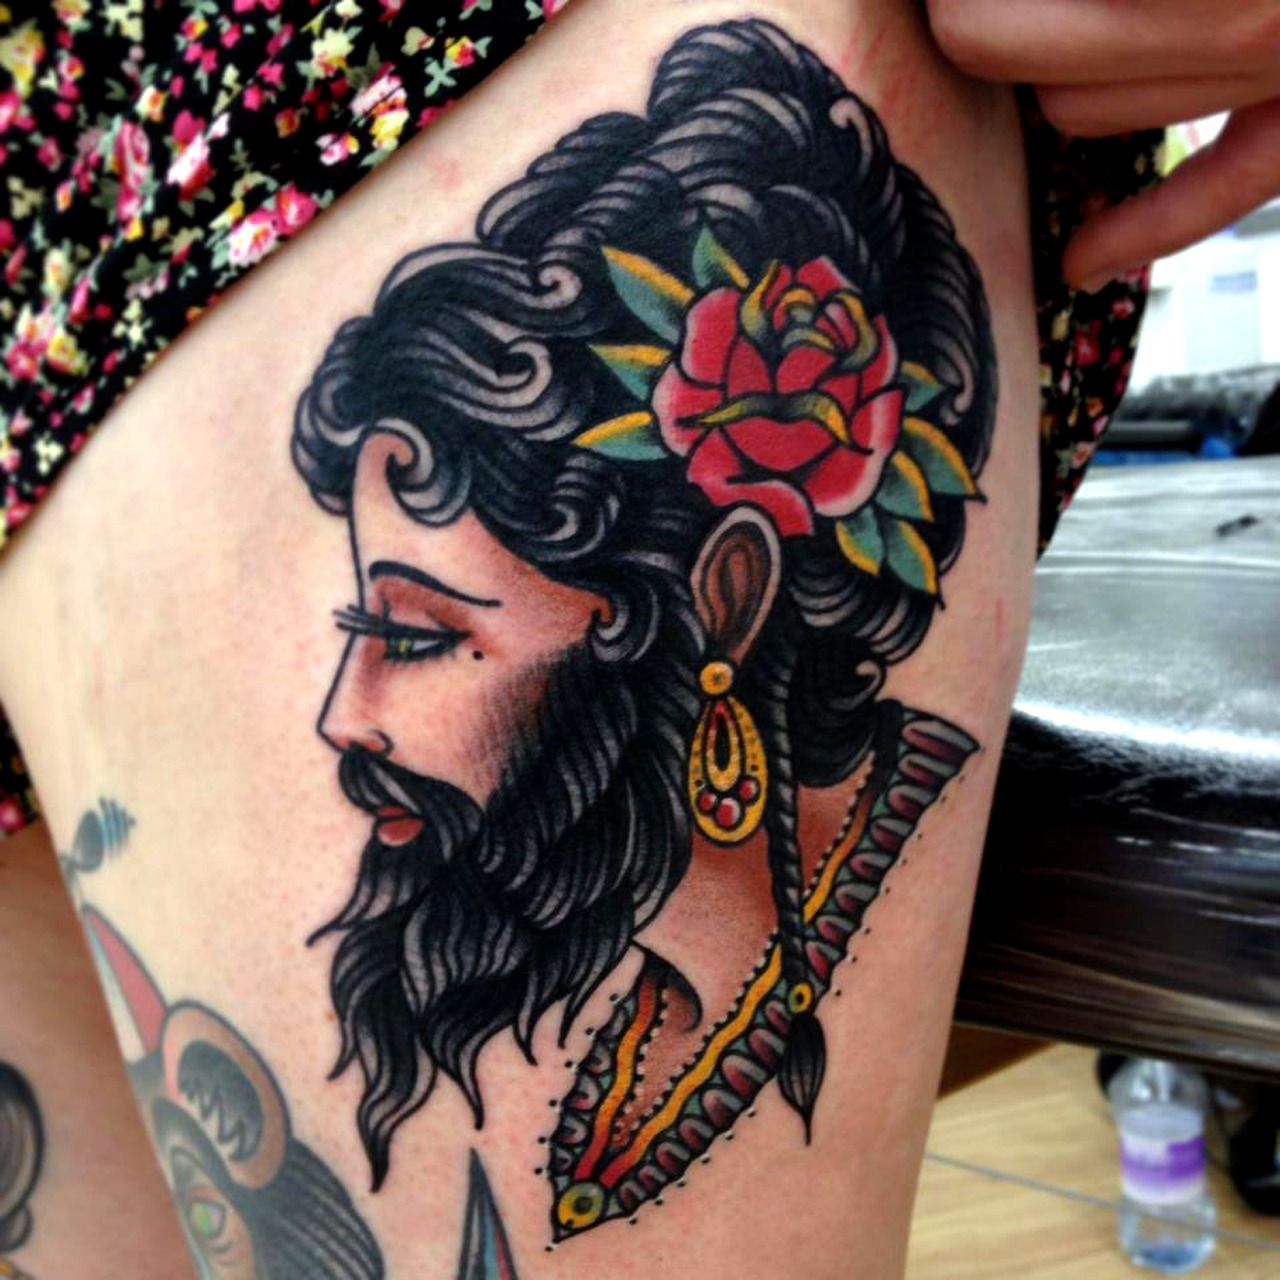 14 Beautiful Gypsy Girl Tattoos